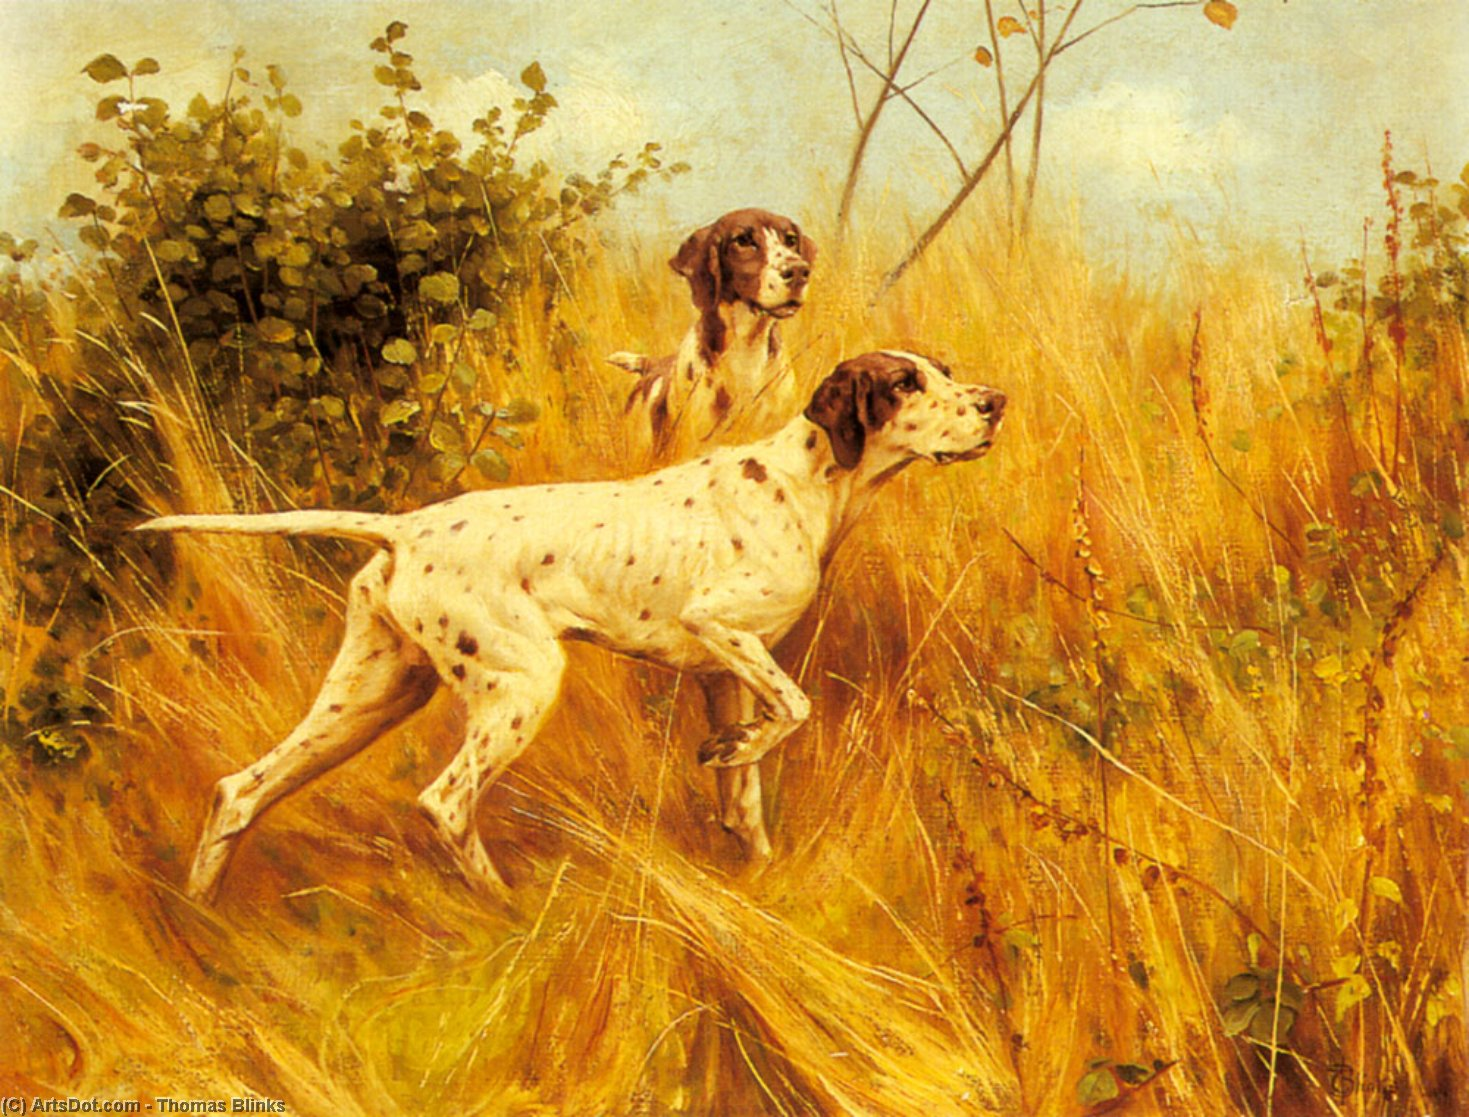 Two pointers in a landscape by Thomas Blinks (1860-1912, United Kingdom)